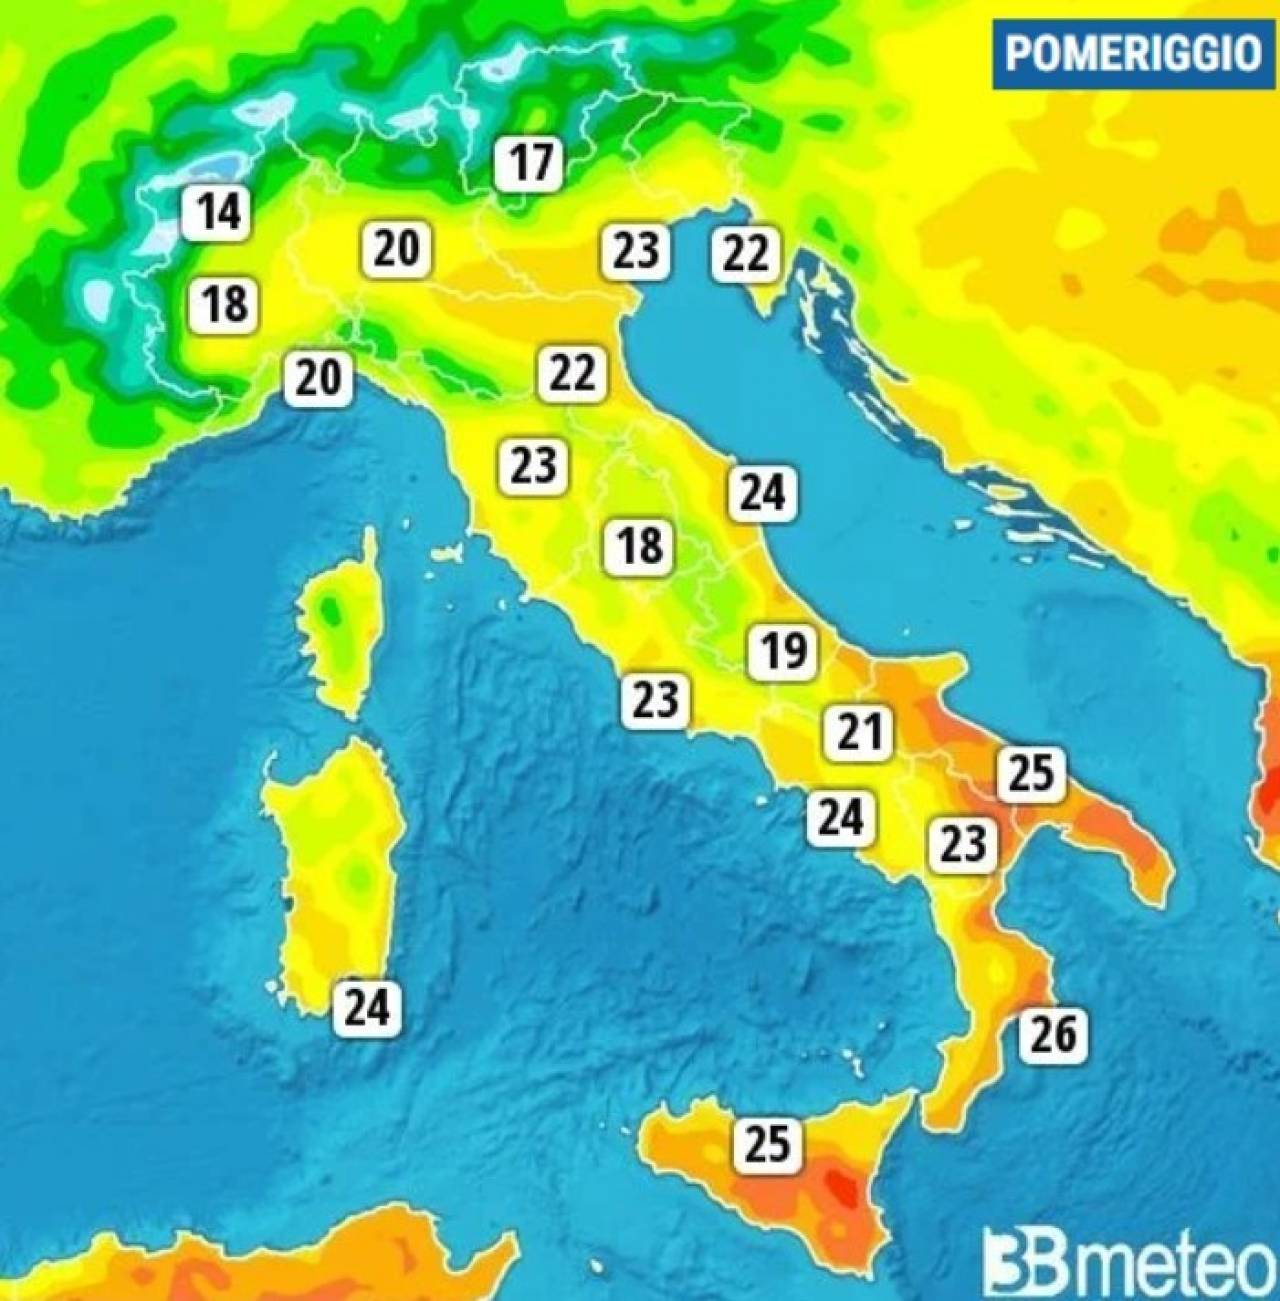 Temperature massime di domenica